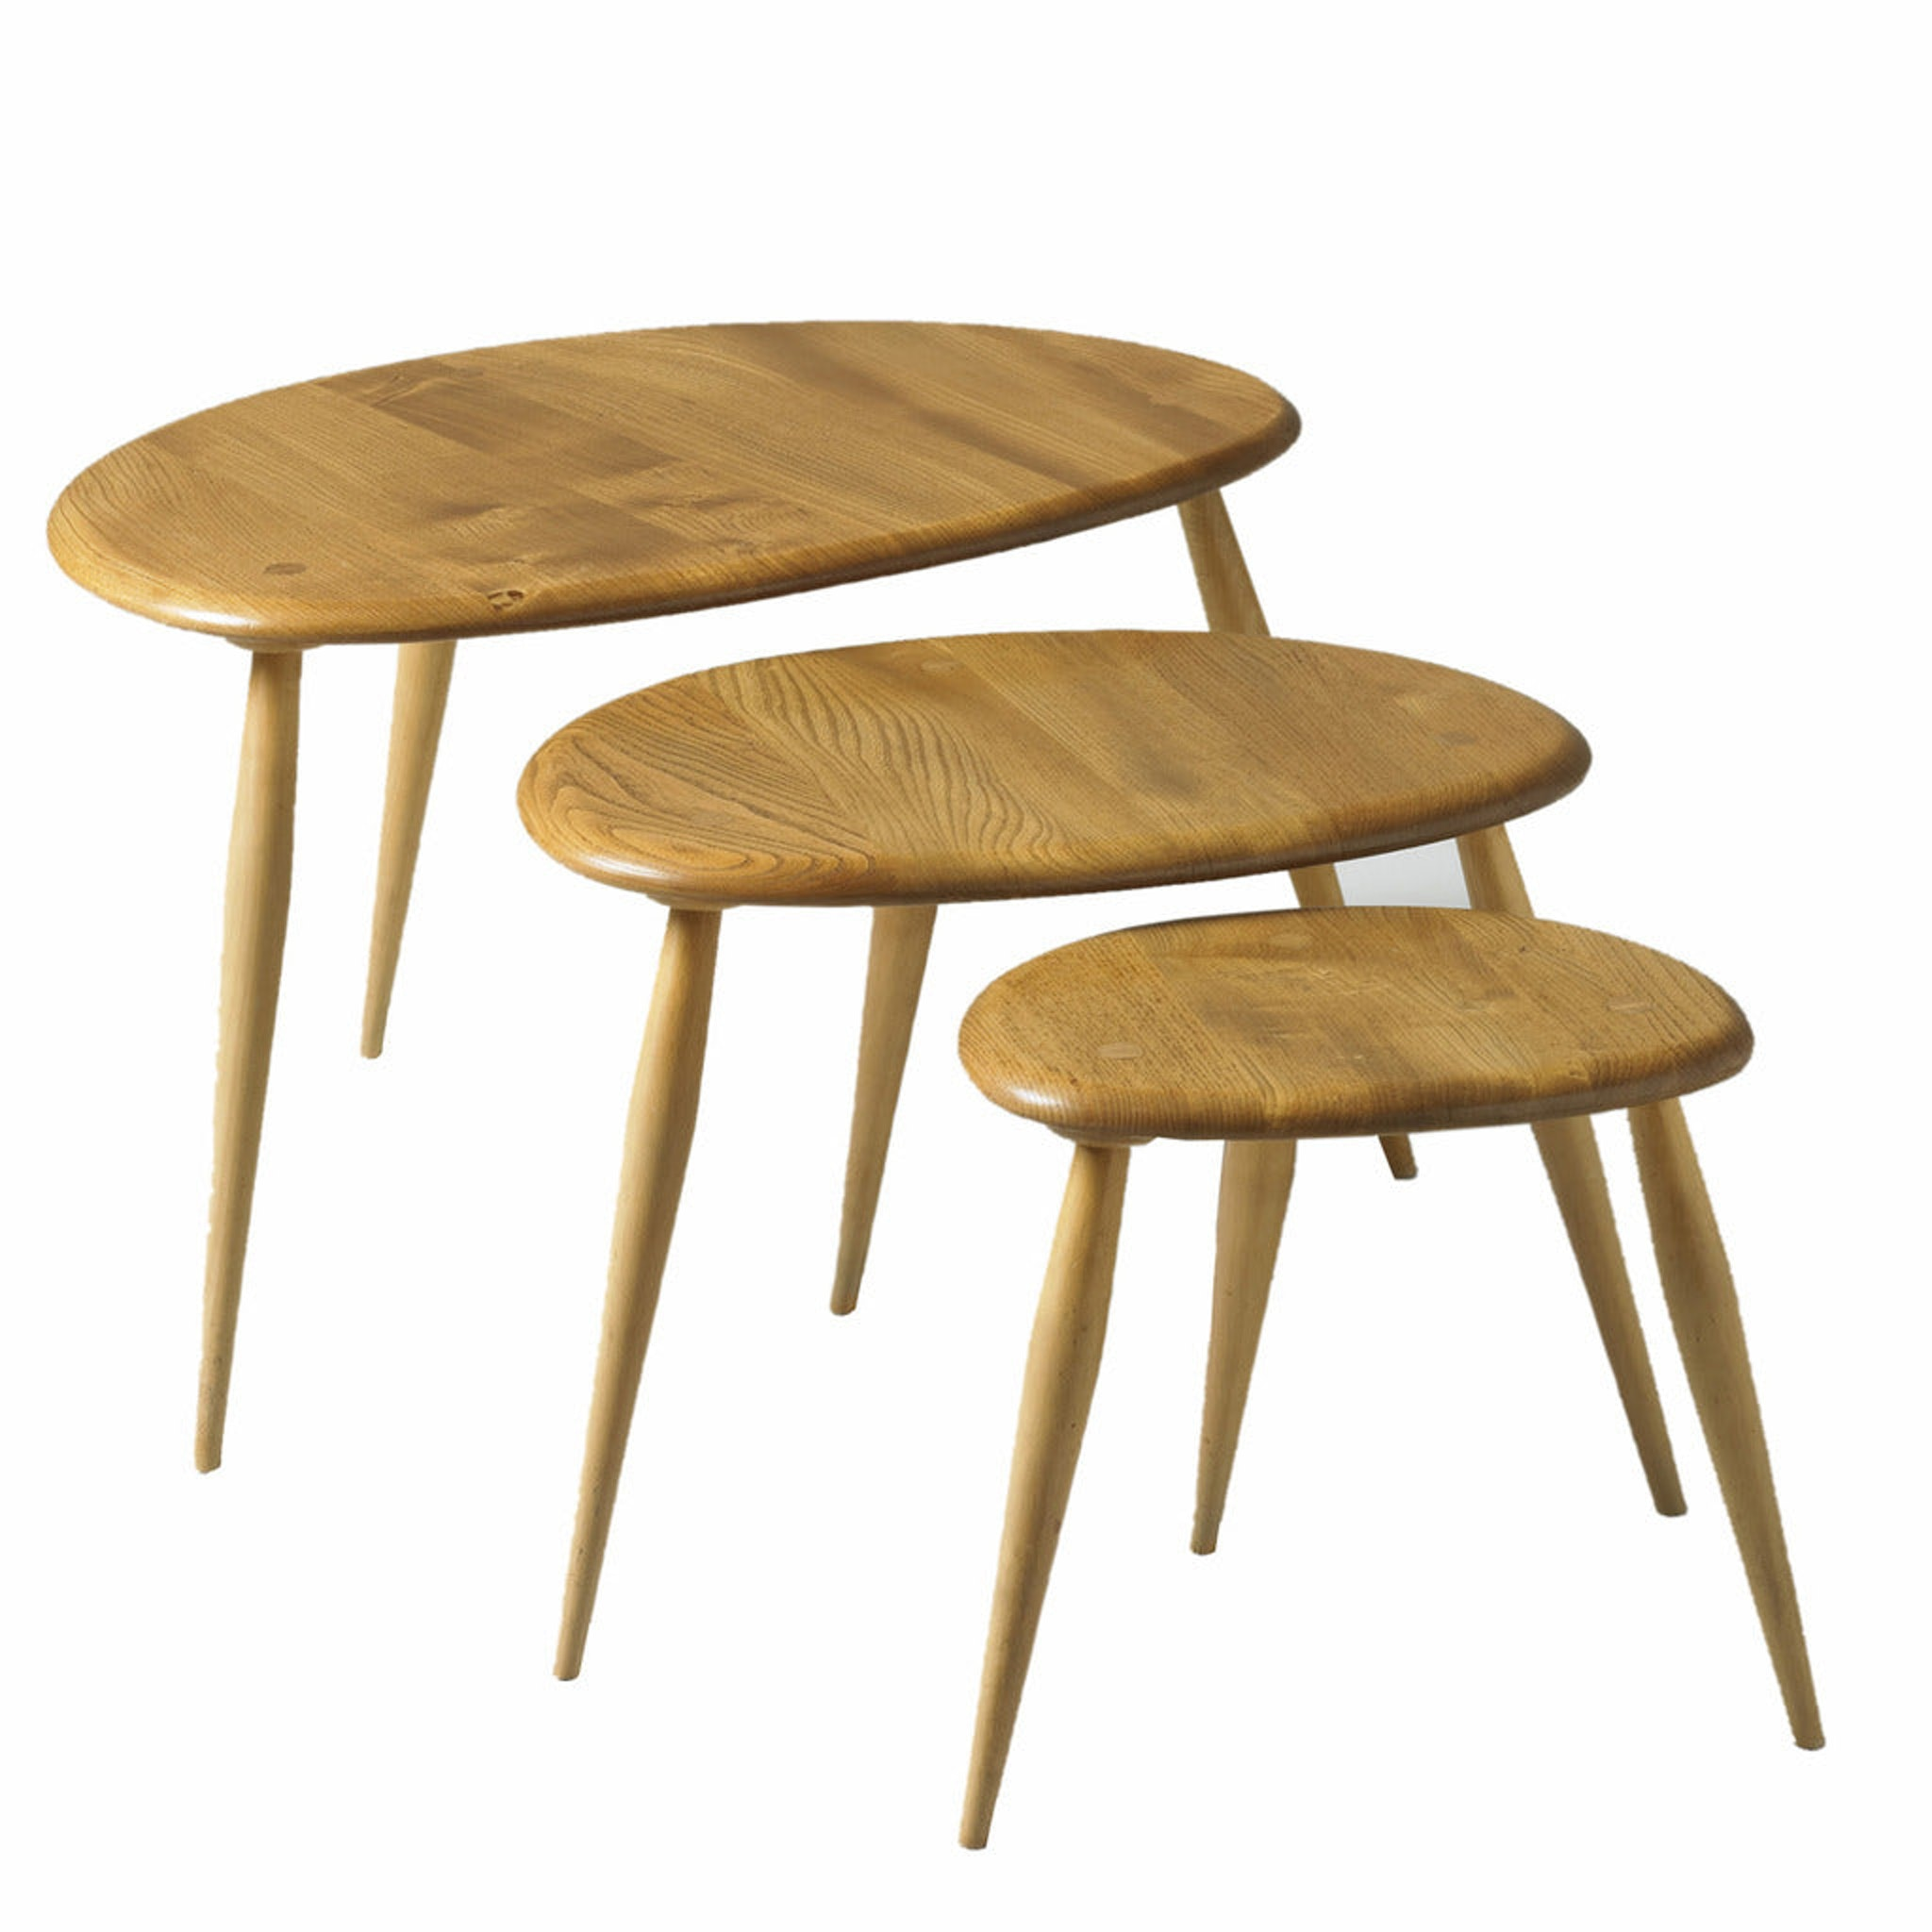 Originals Nest of Three Pebble Tables by Ercol